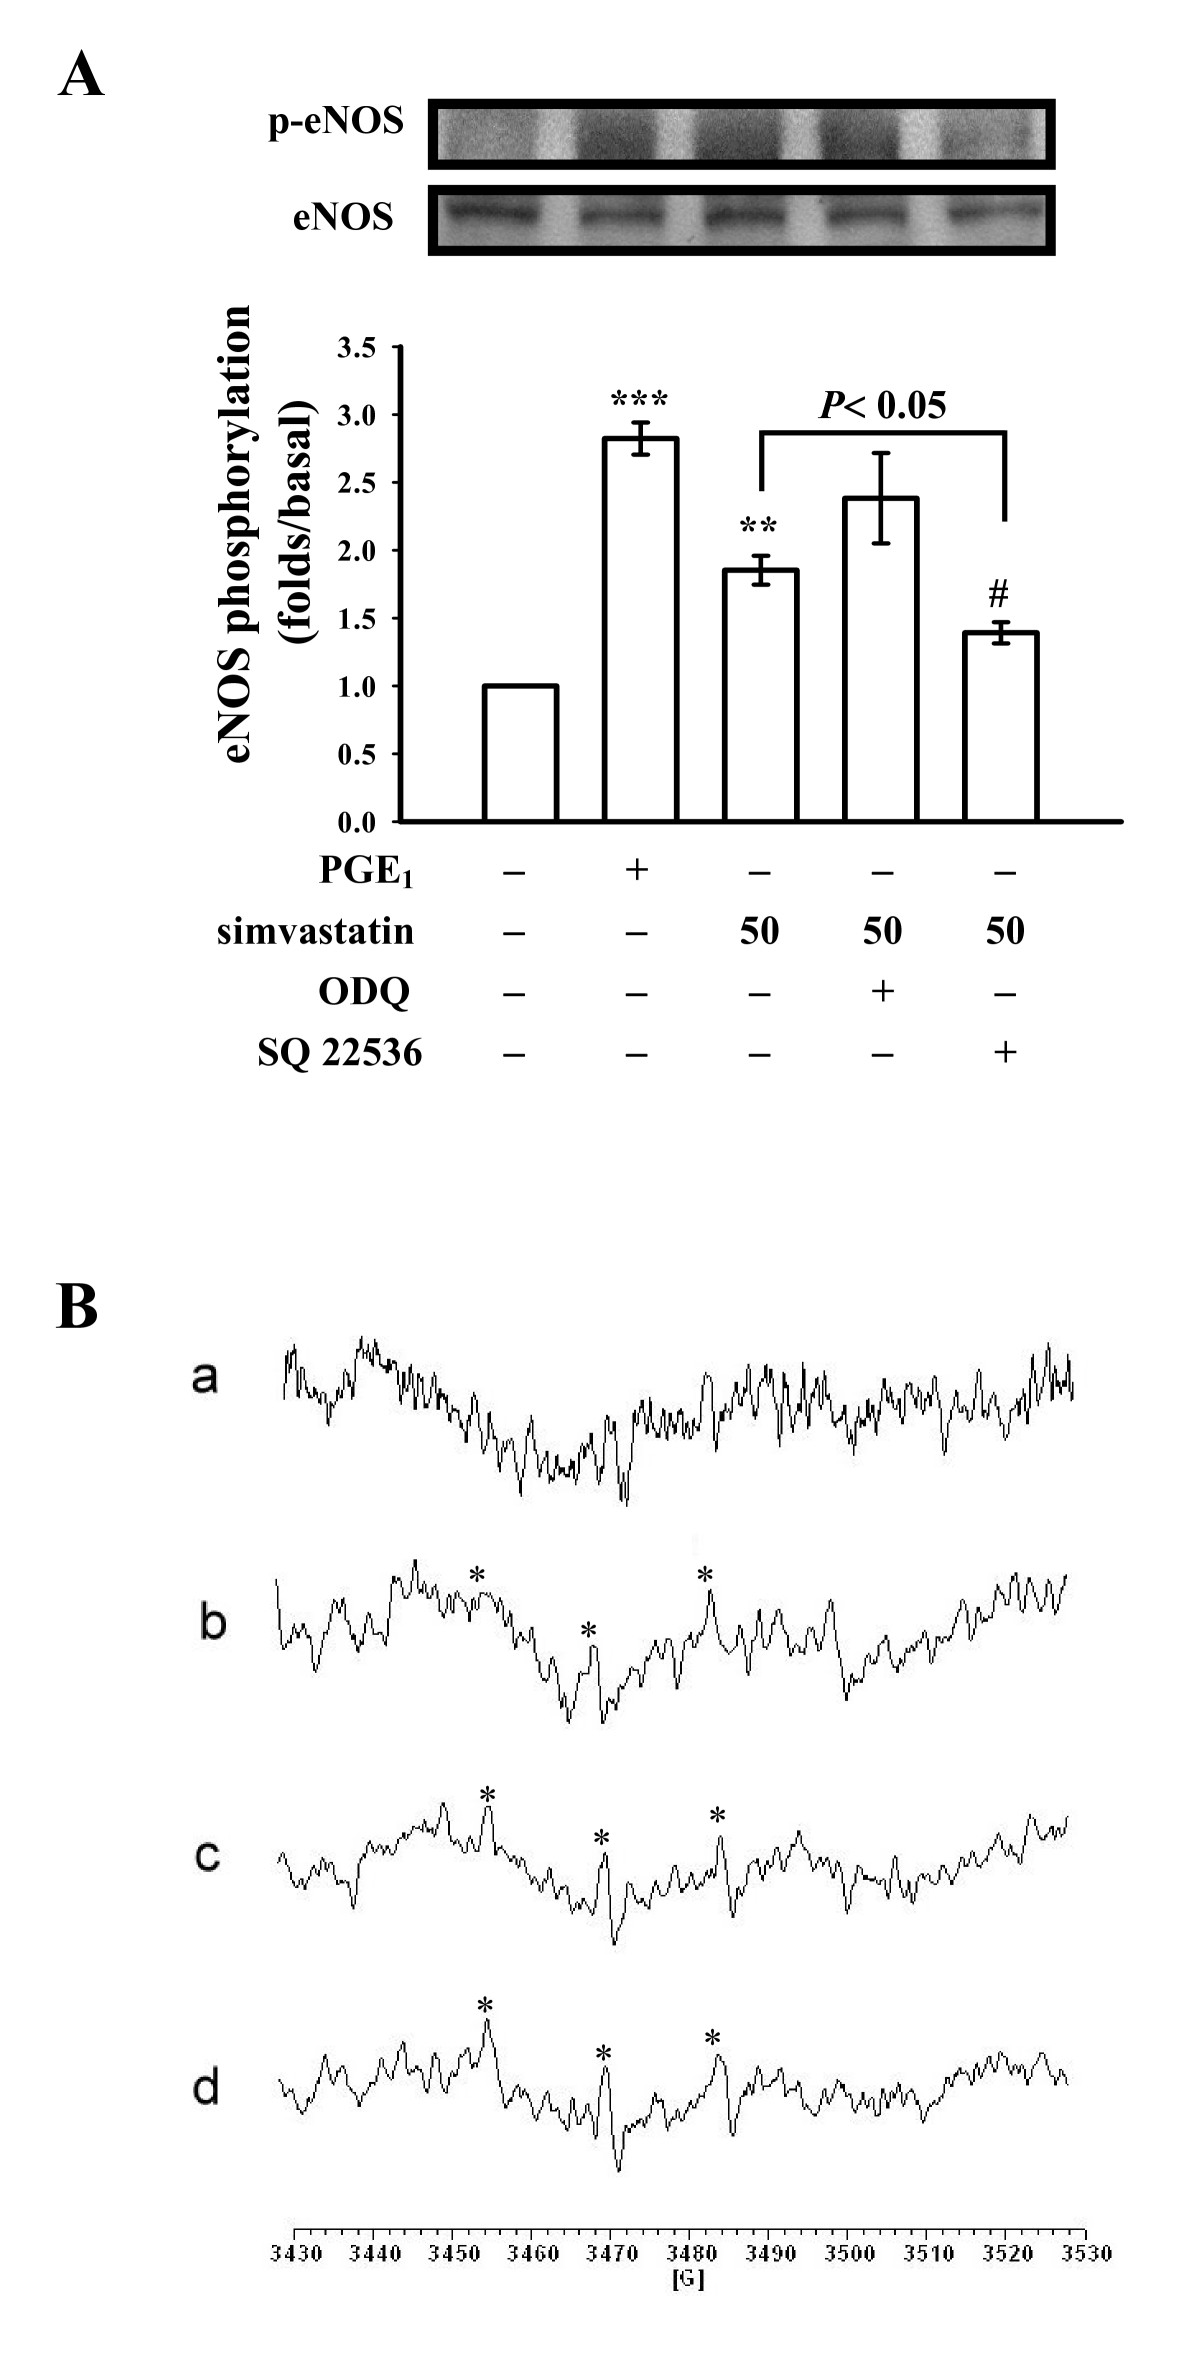 https://static-content.springer.com/image/art%3A10.1186%2F1423-0127-17-45/MediaObjects/12929_2010_Article_159_Fig5_HTML.jpg